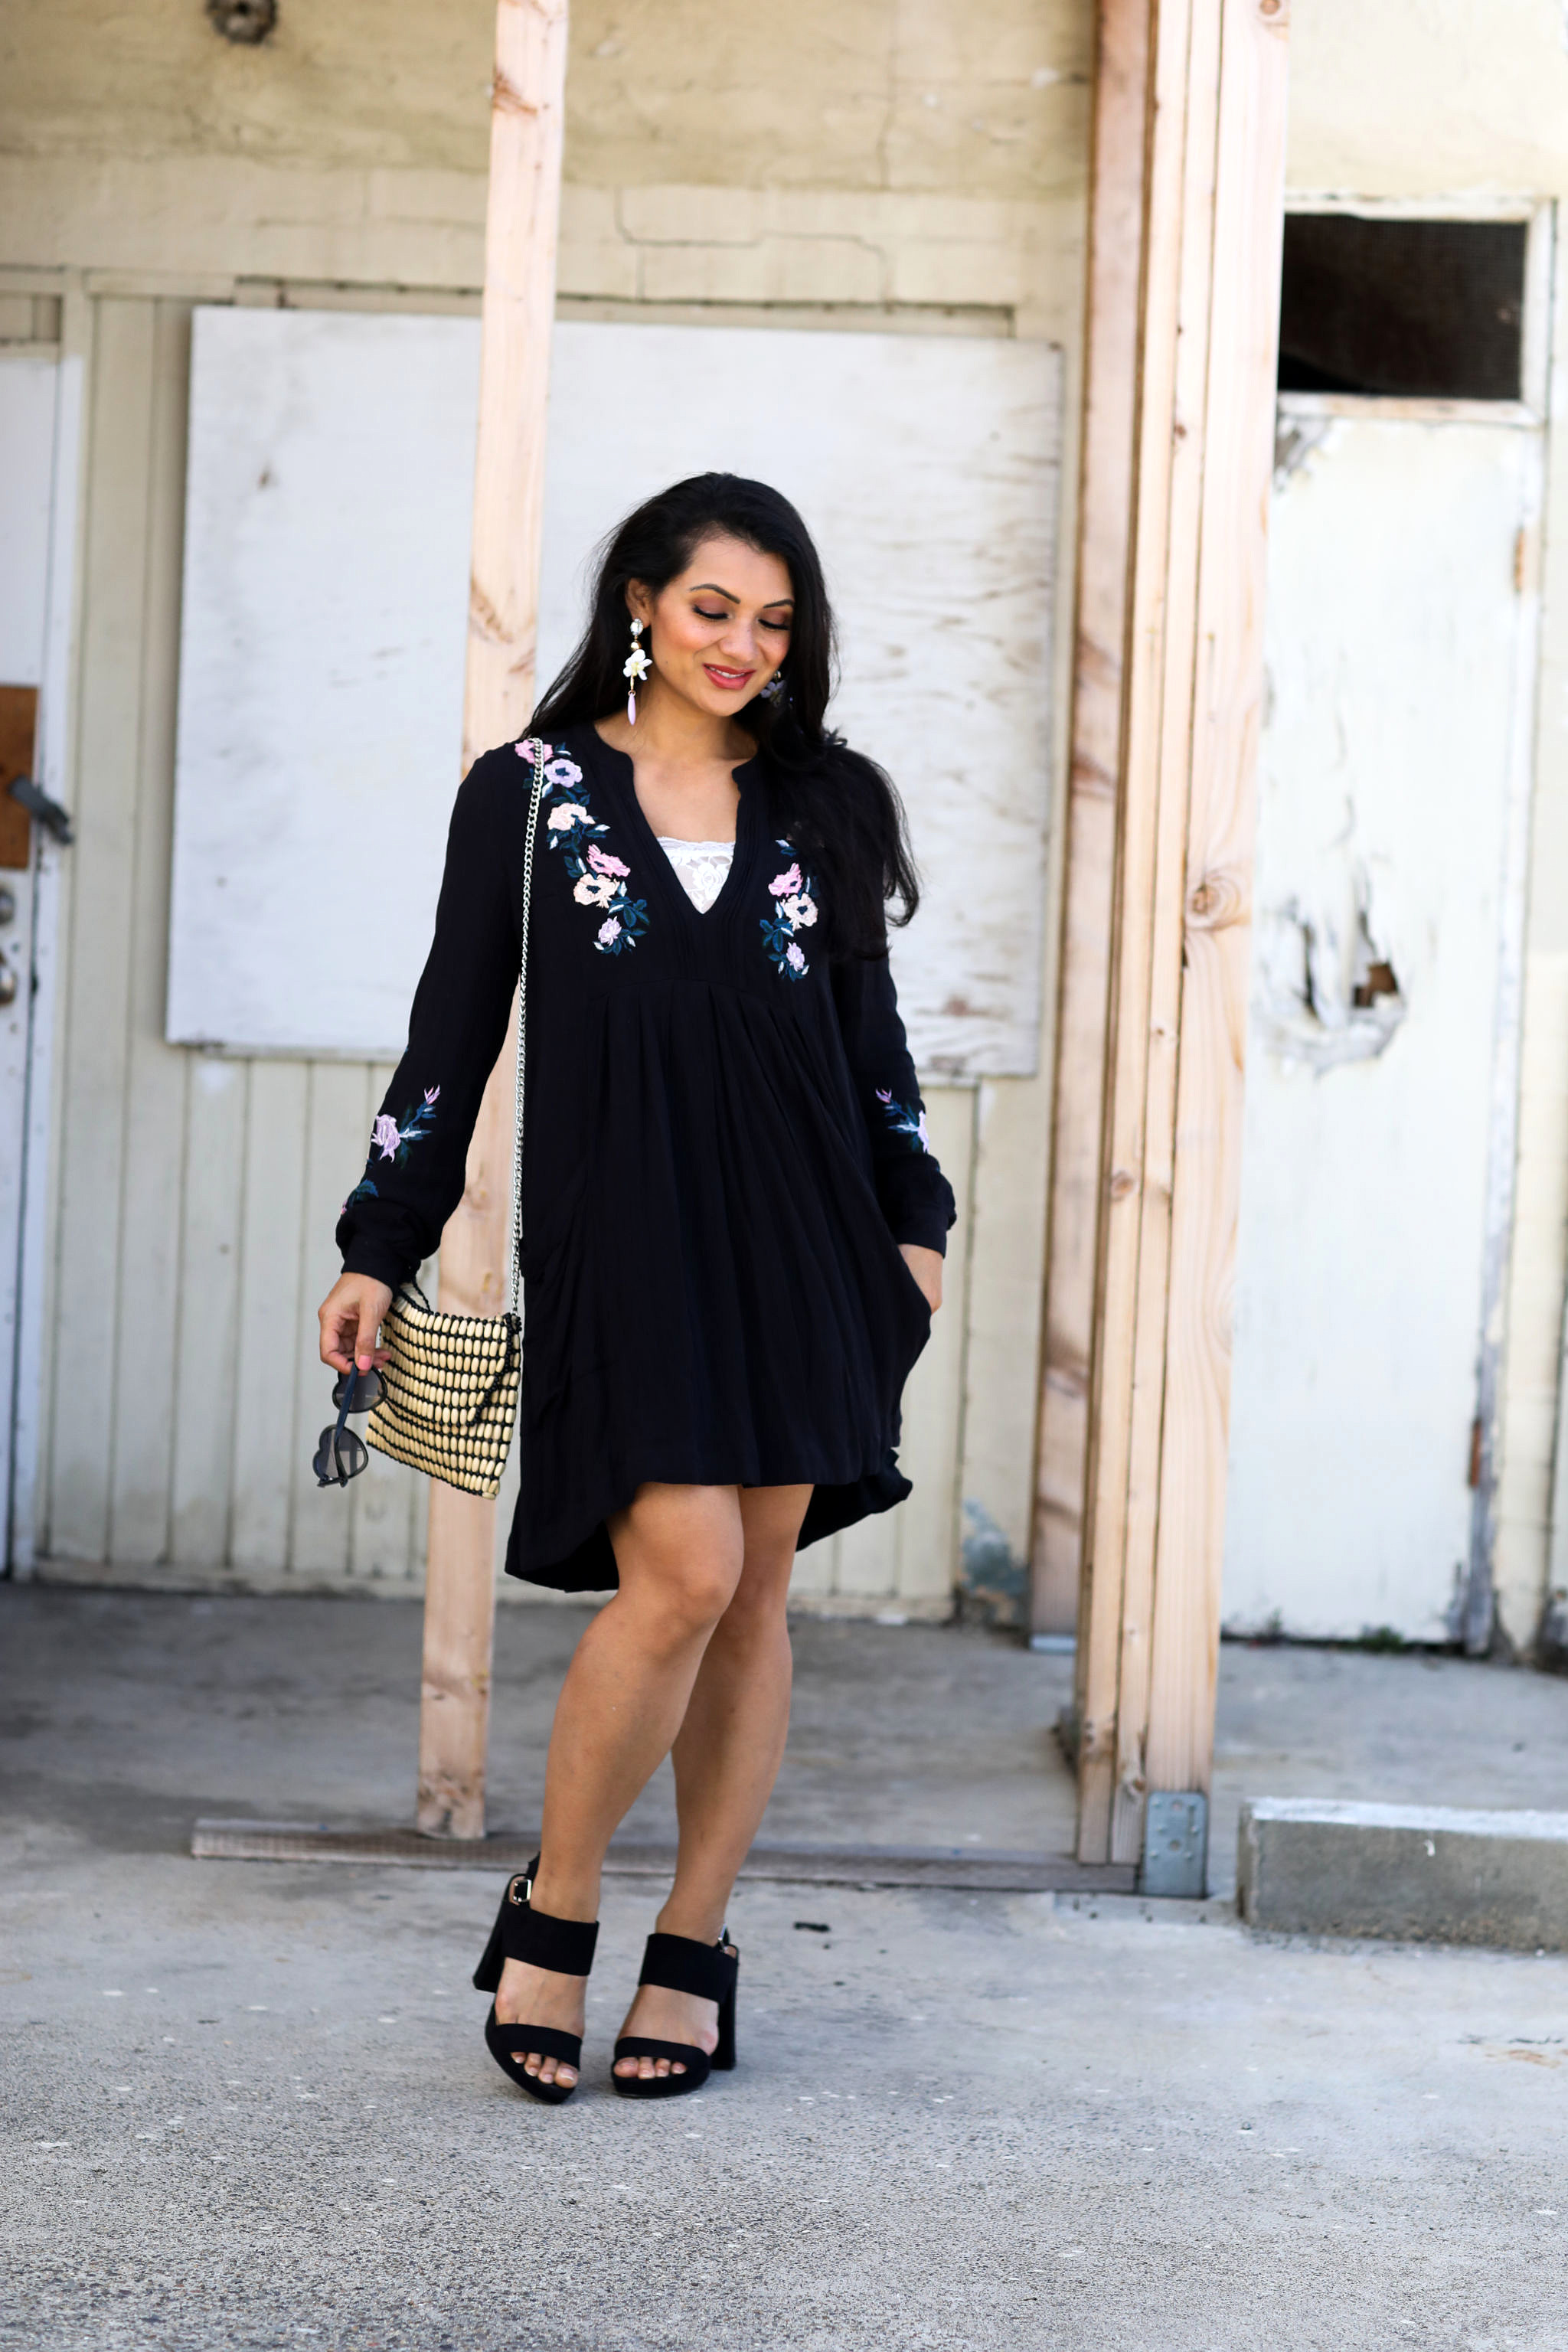 Curious how to style an embroidered dress? Orange County blogger Debbie Savage is sharing her favorite way to style an embroidered dress effortlessly. See how HERE!